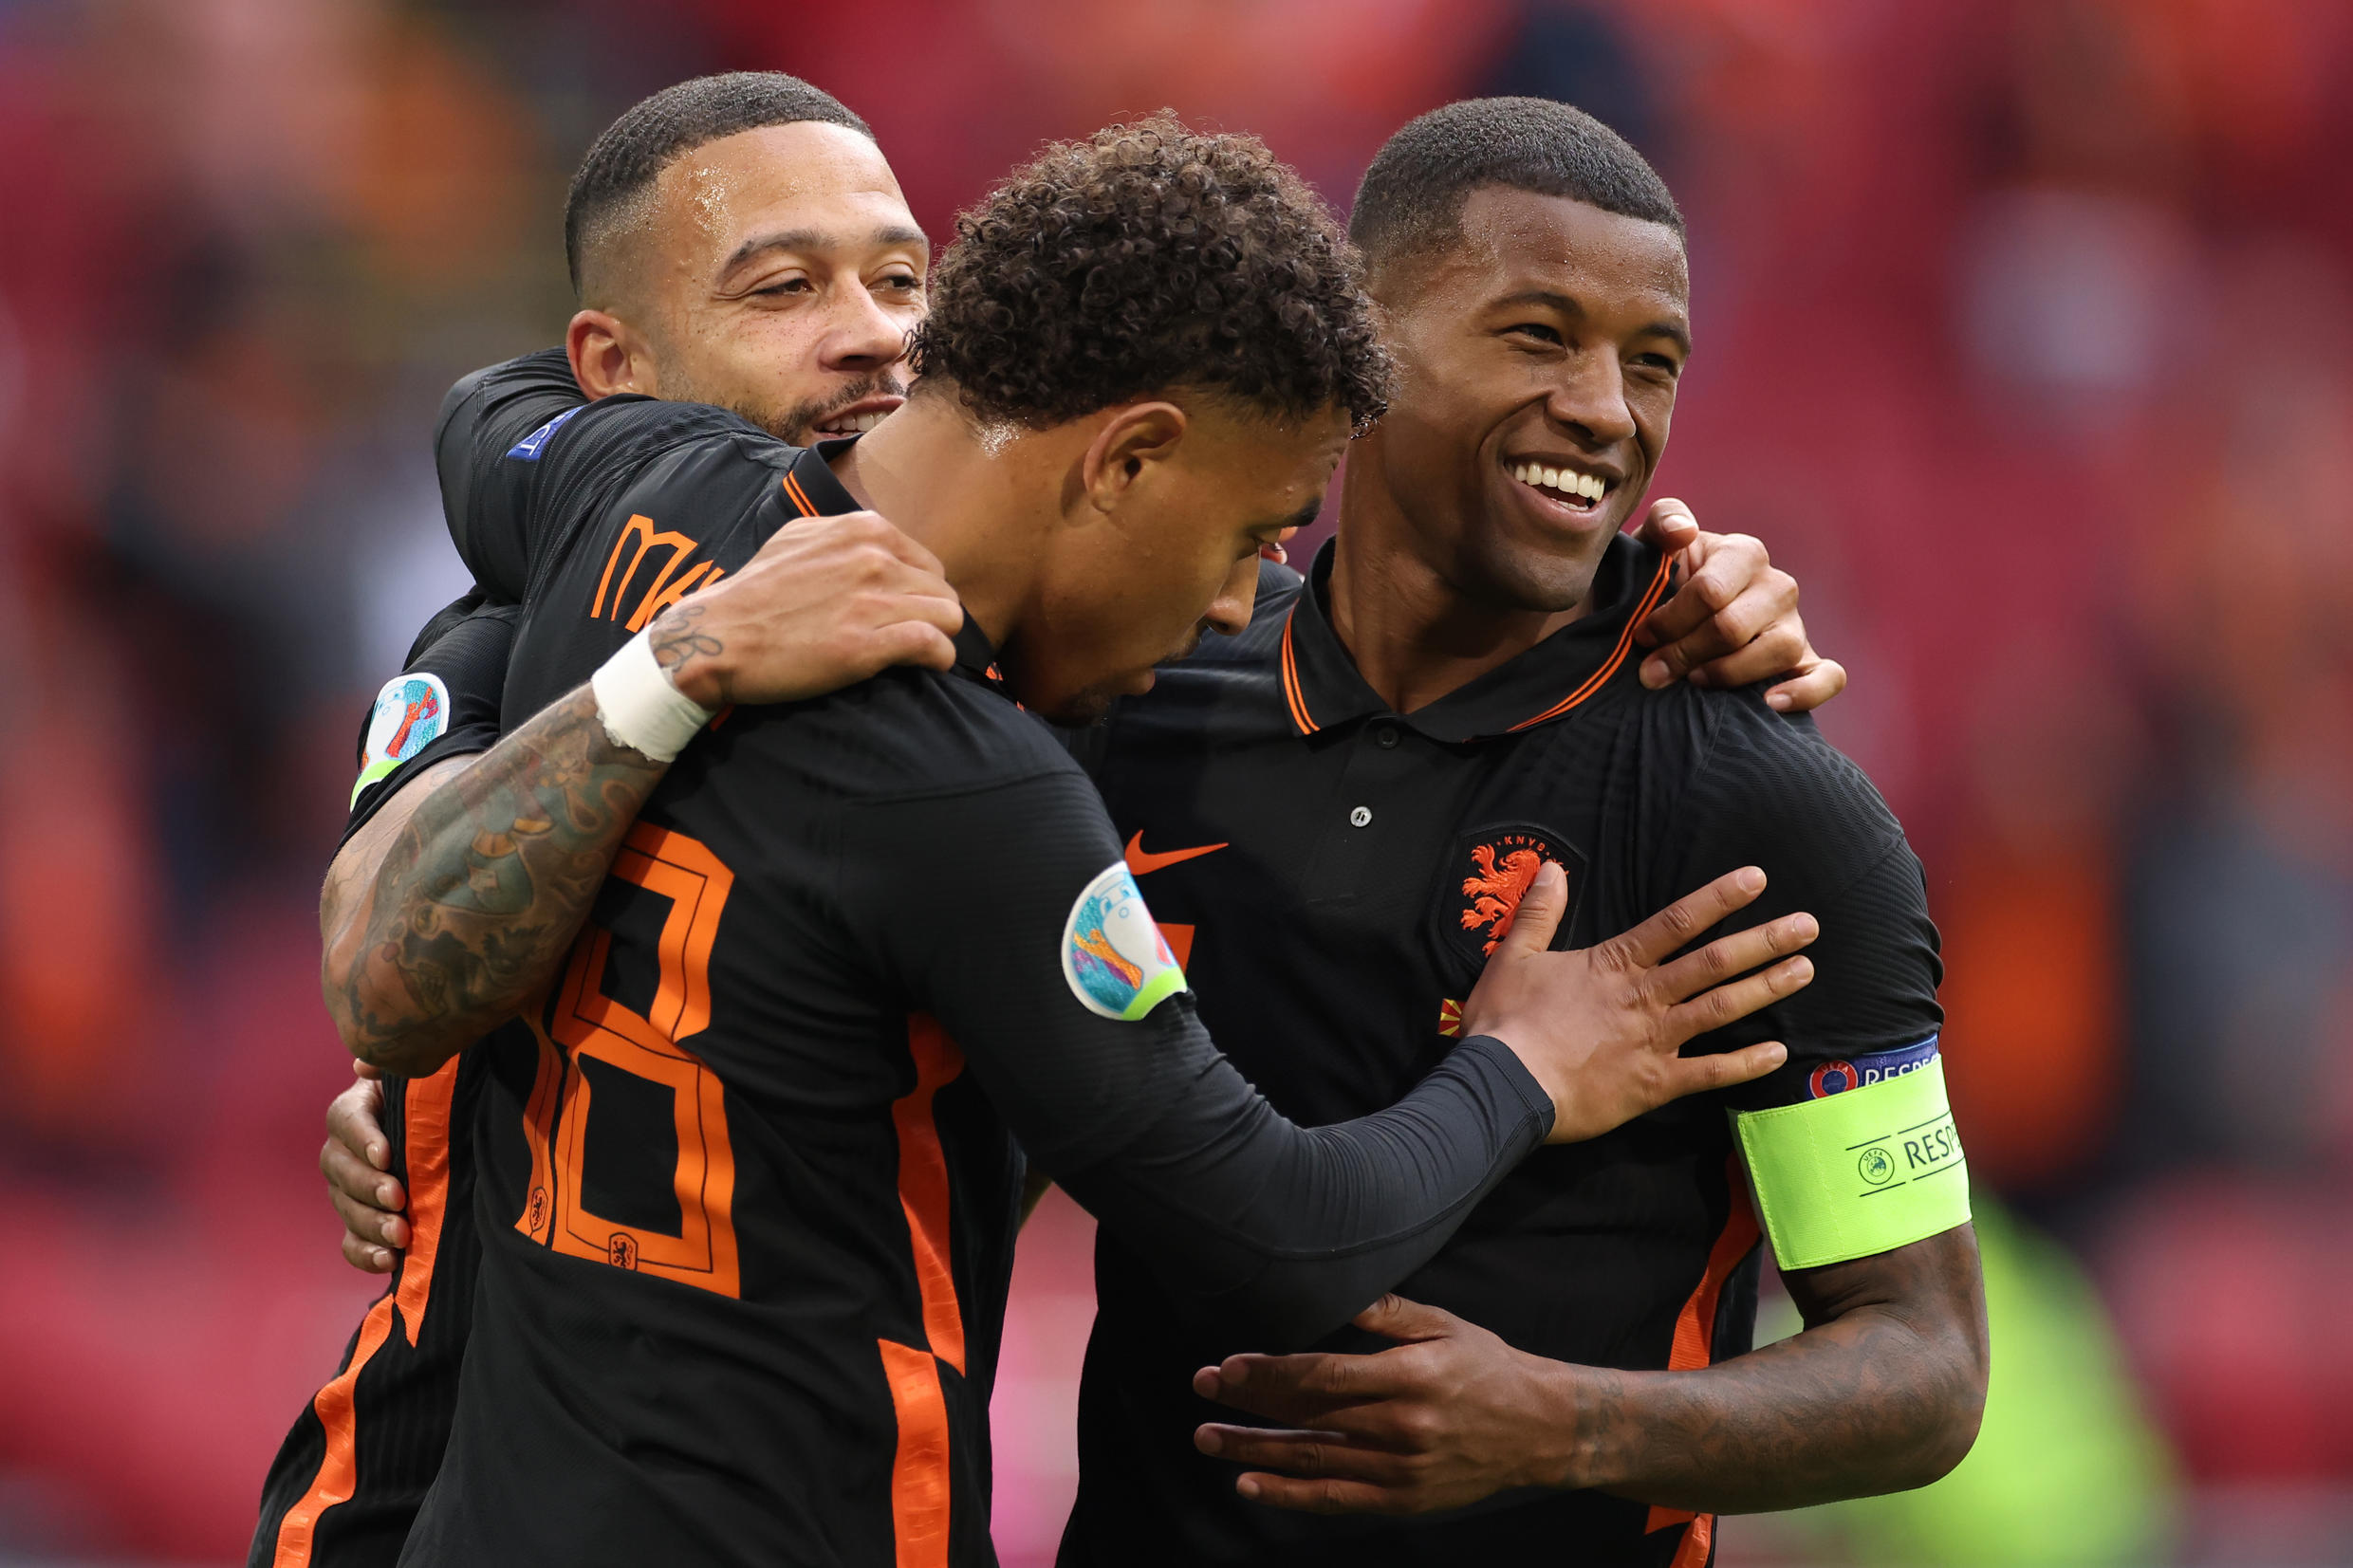 Georginio Wijnaldum (R) celebrates with Memphis Depay and Donyell Malen after scoring his second goal and the Netherlands' third against North Macedonia